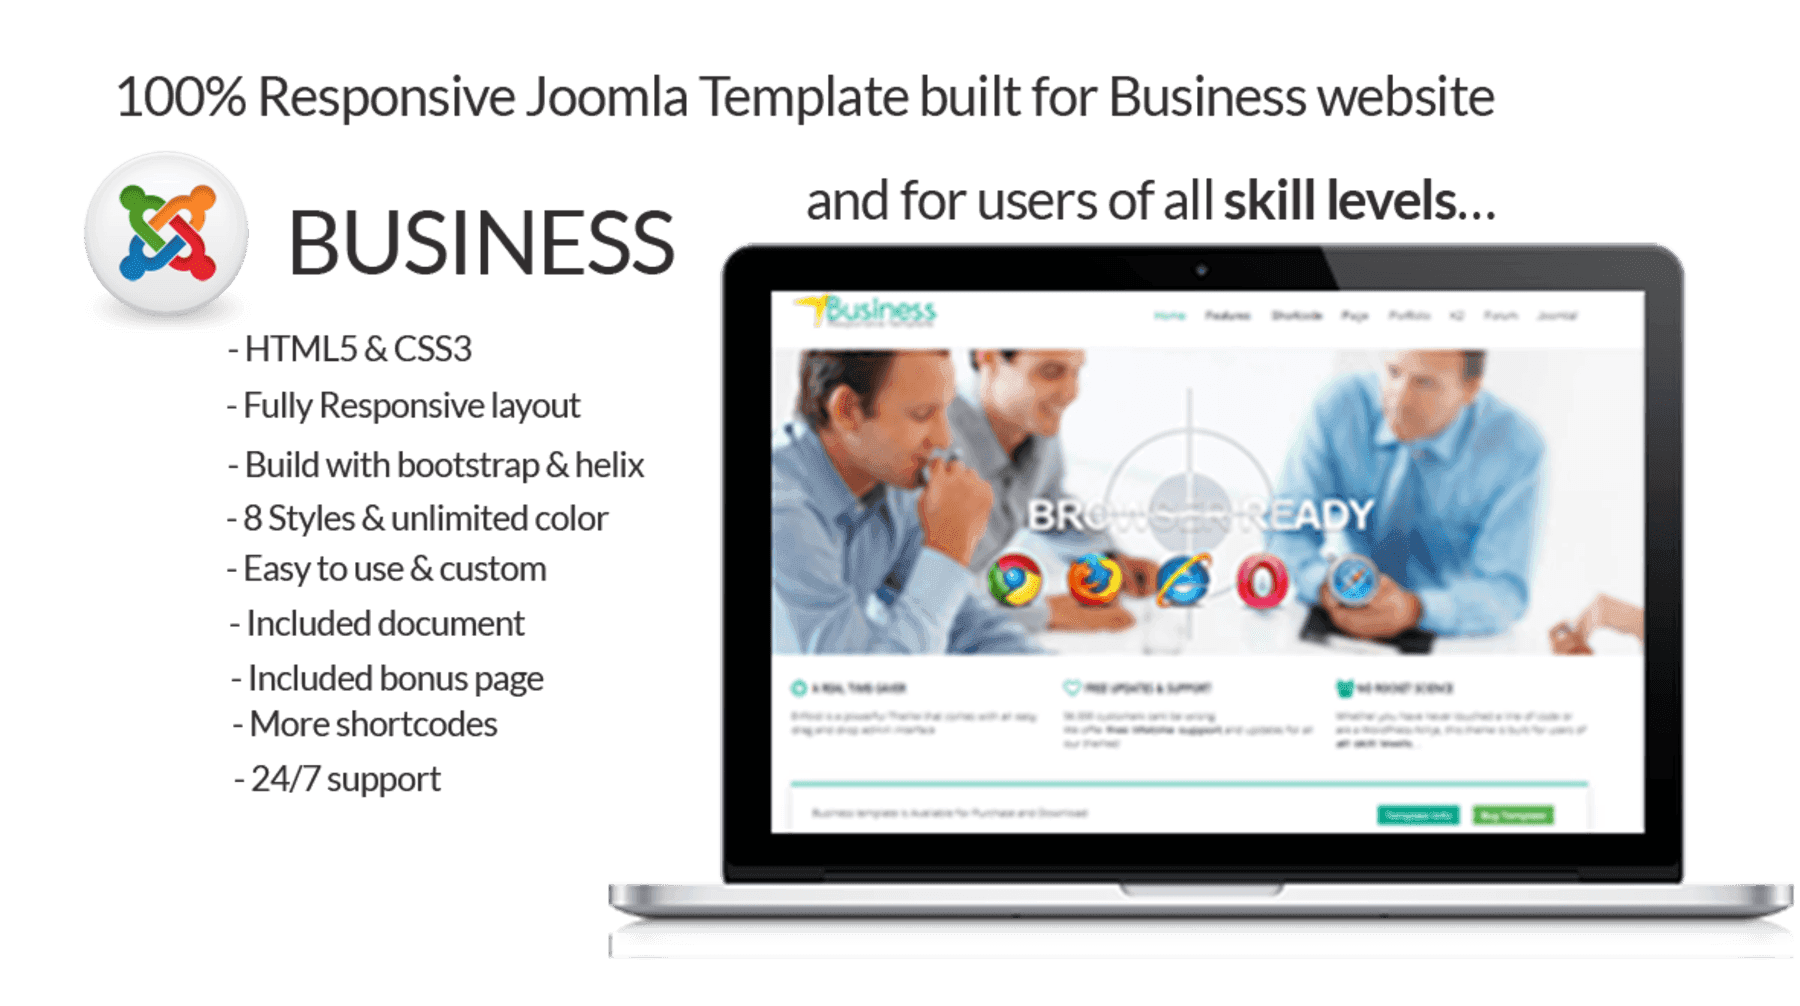 business joomla business template themes templates. Black Bedroom Furniture Sets. Home Design Ideas